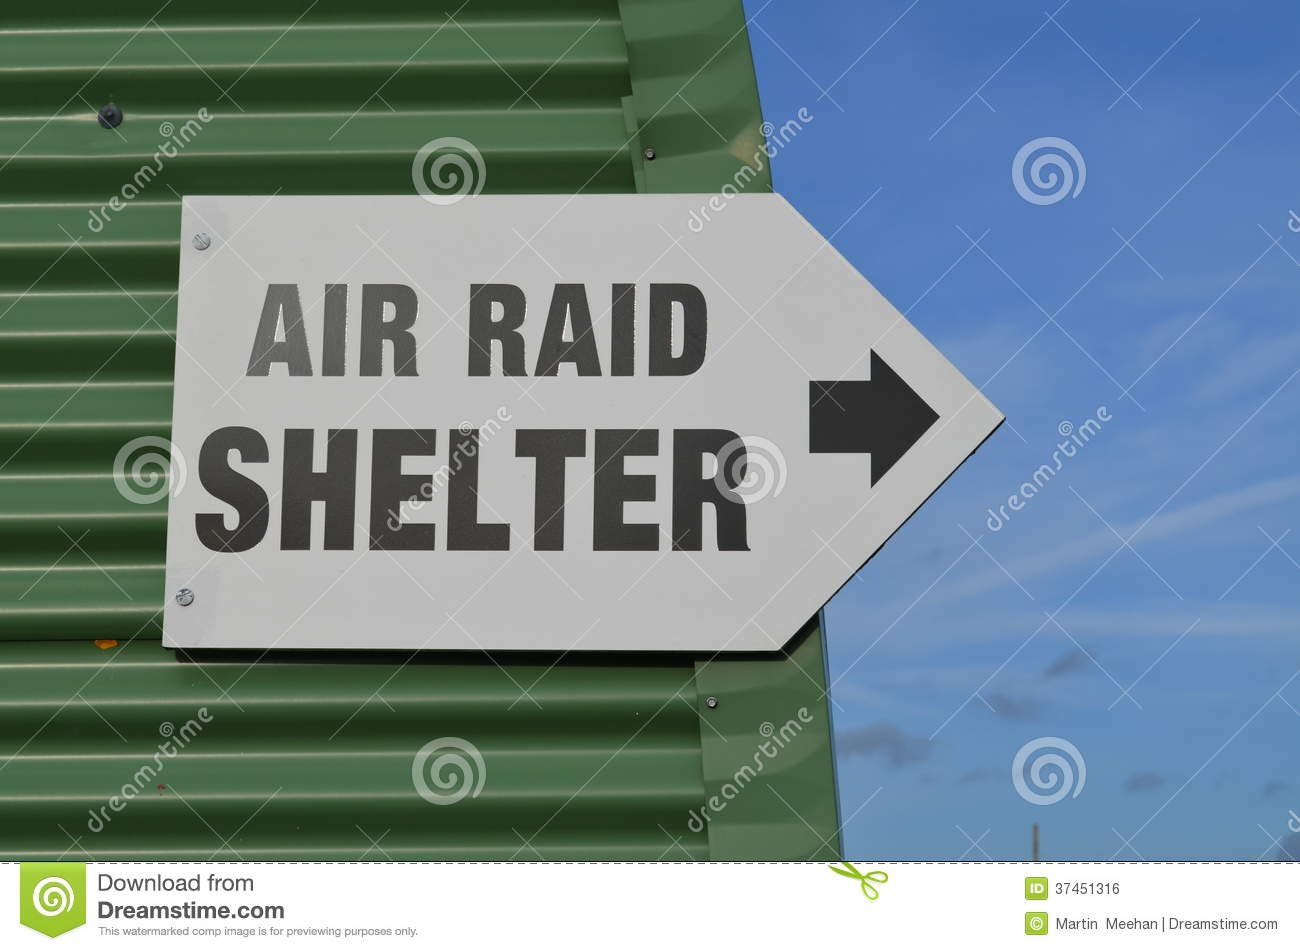 On A Metal Shed An Air Raid Shelter Sign Pointing To A Place Of Safety